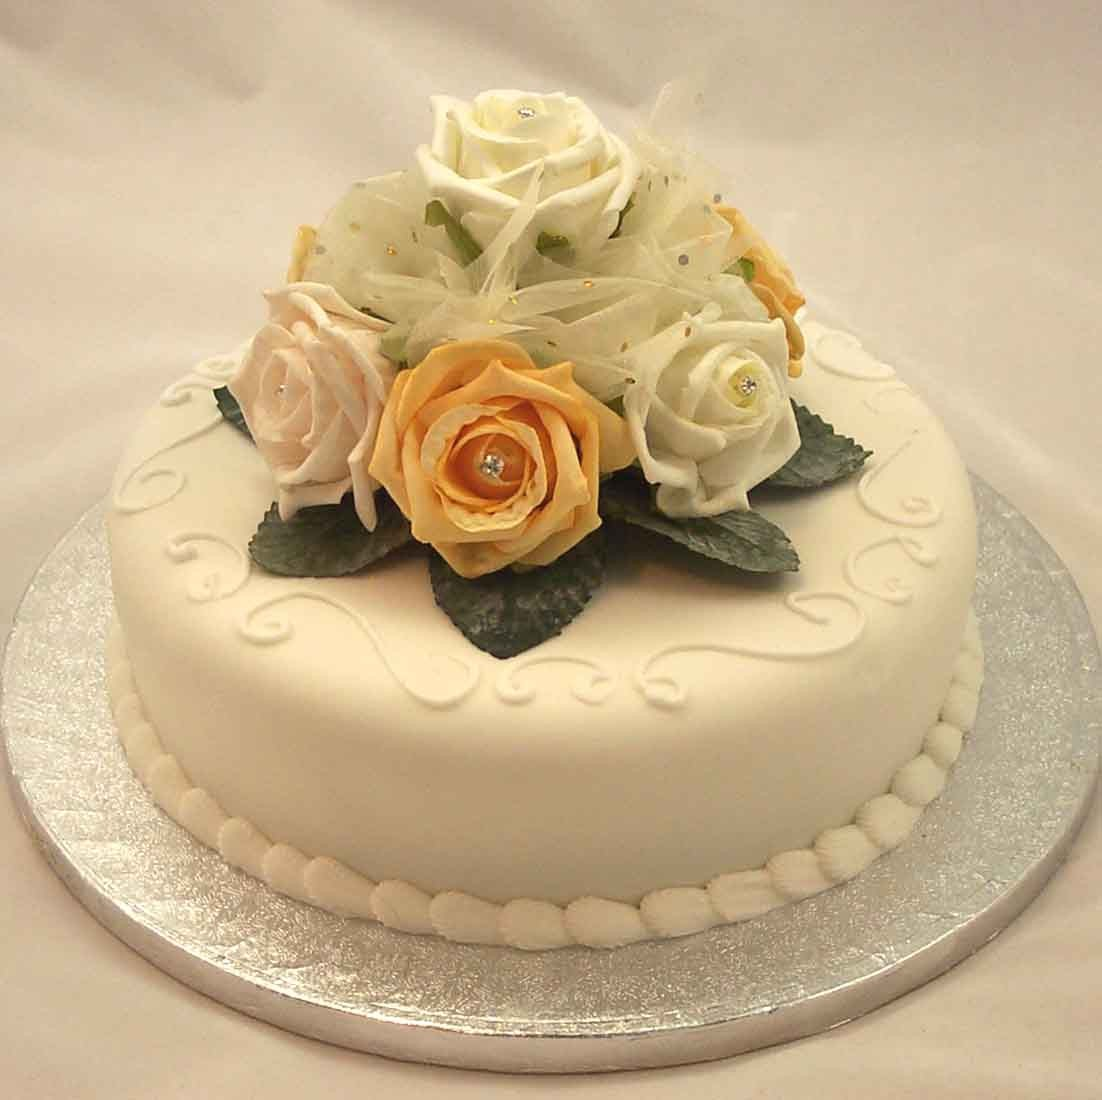 Cake Decorations Ivory Amp Gold Rose Diamante Organza Cake